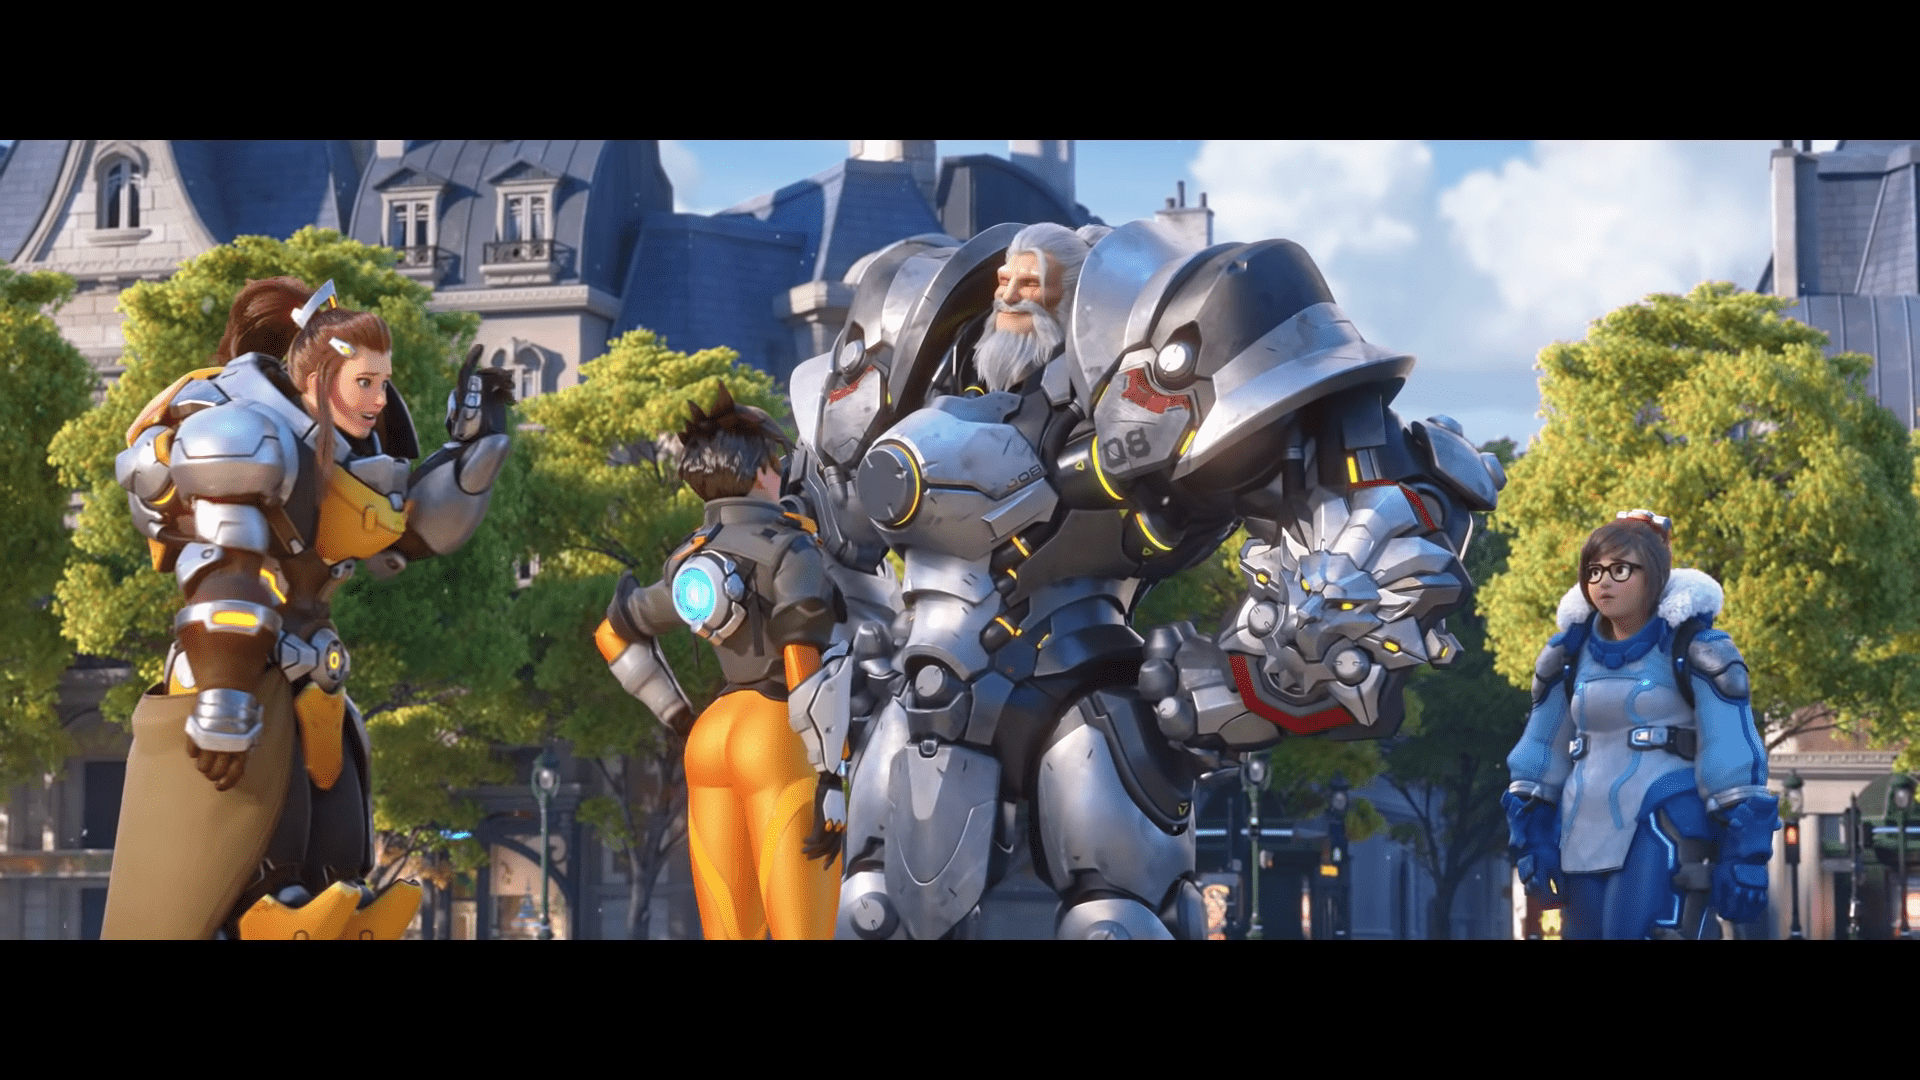 Professional Chinese Overwatch Teams Are Fully Stumped On Current Meta Chaos From PTR